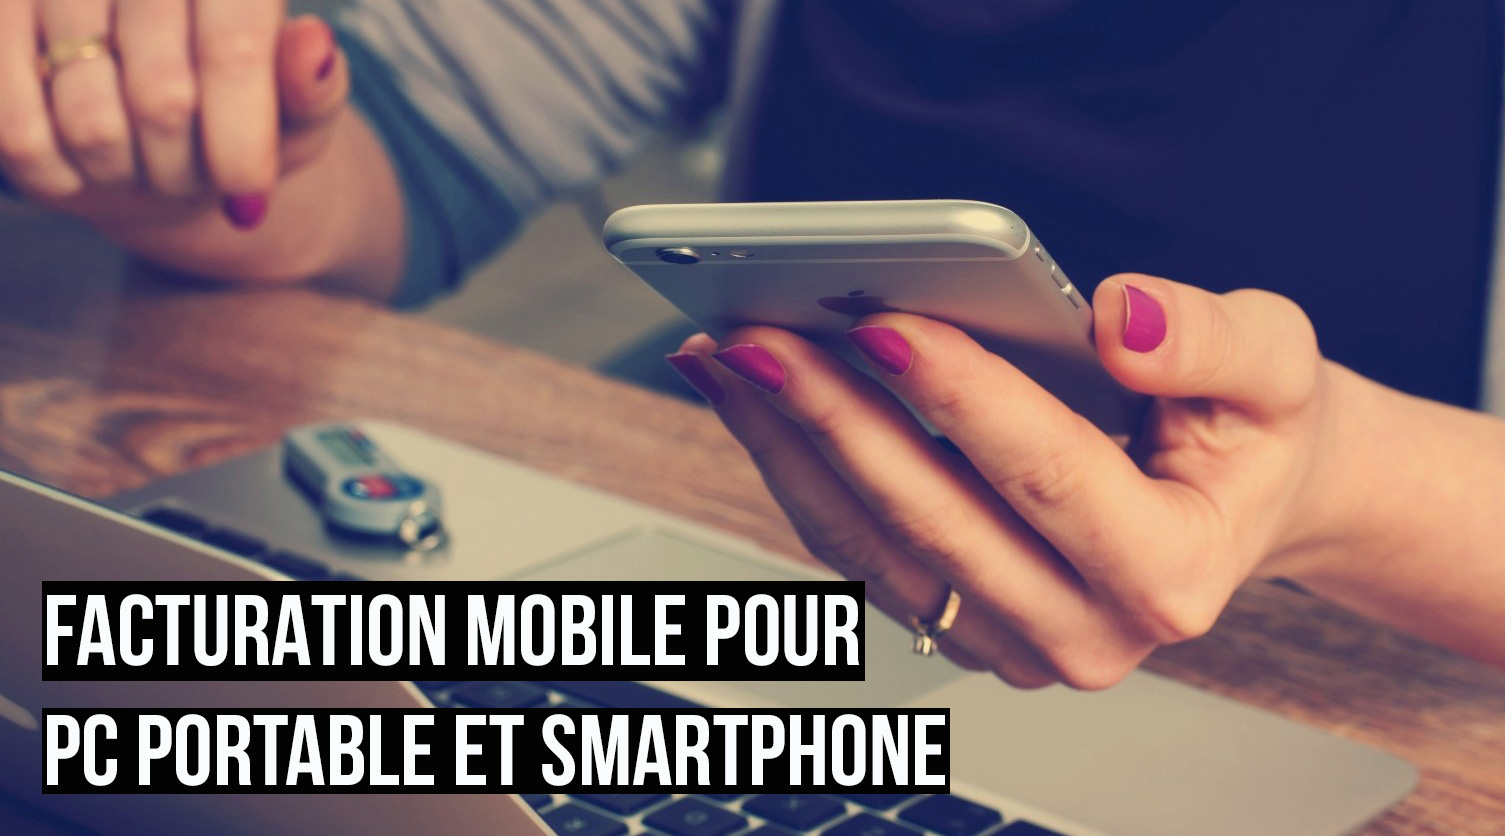 Facturation mobile sur tous supports